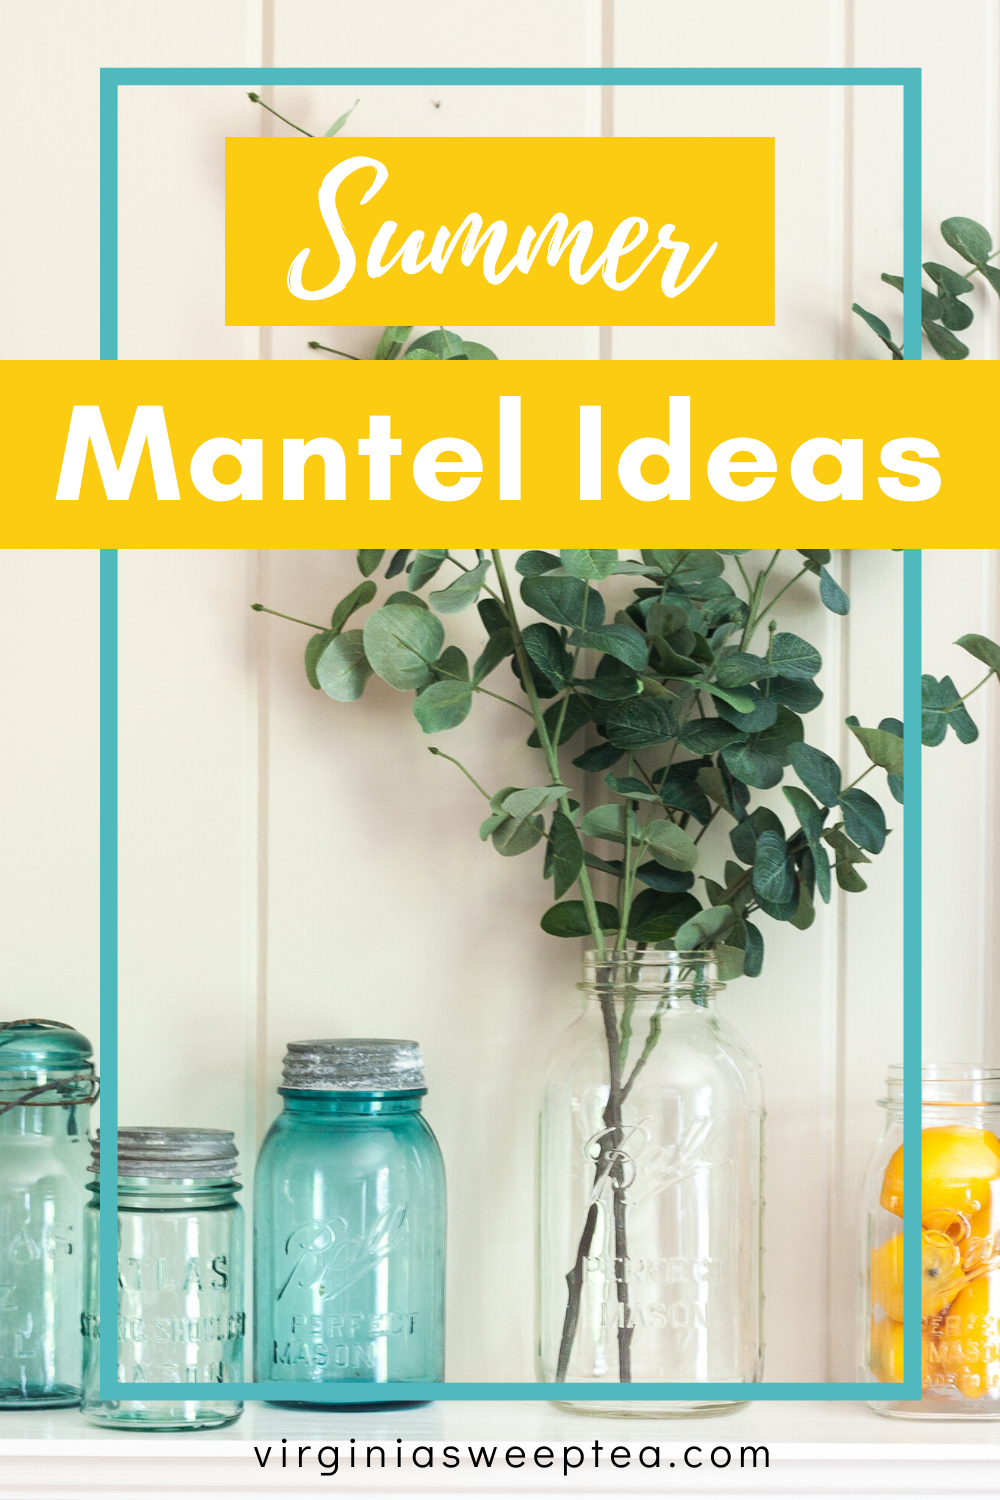 Summer Mantel Ideas - Get summer mantel decorating ideas from a talented group of home decor bloggers.  #summermantel #summerdecoratingicdeas via @spaula